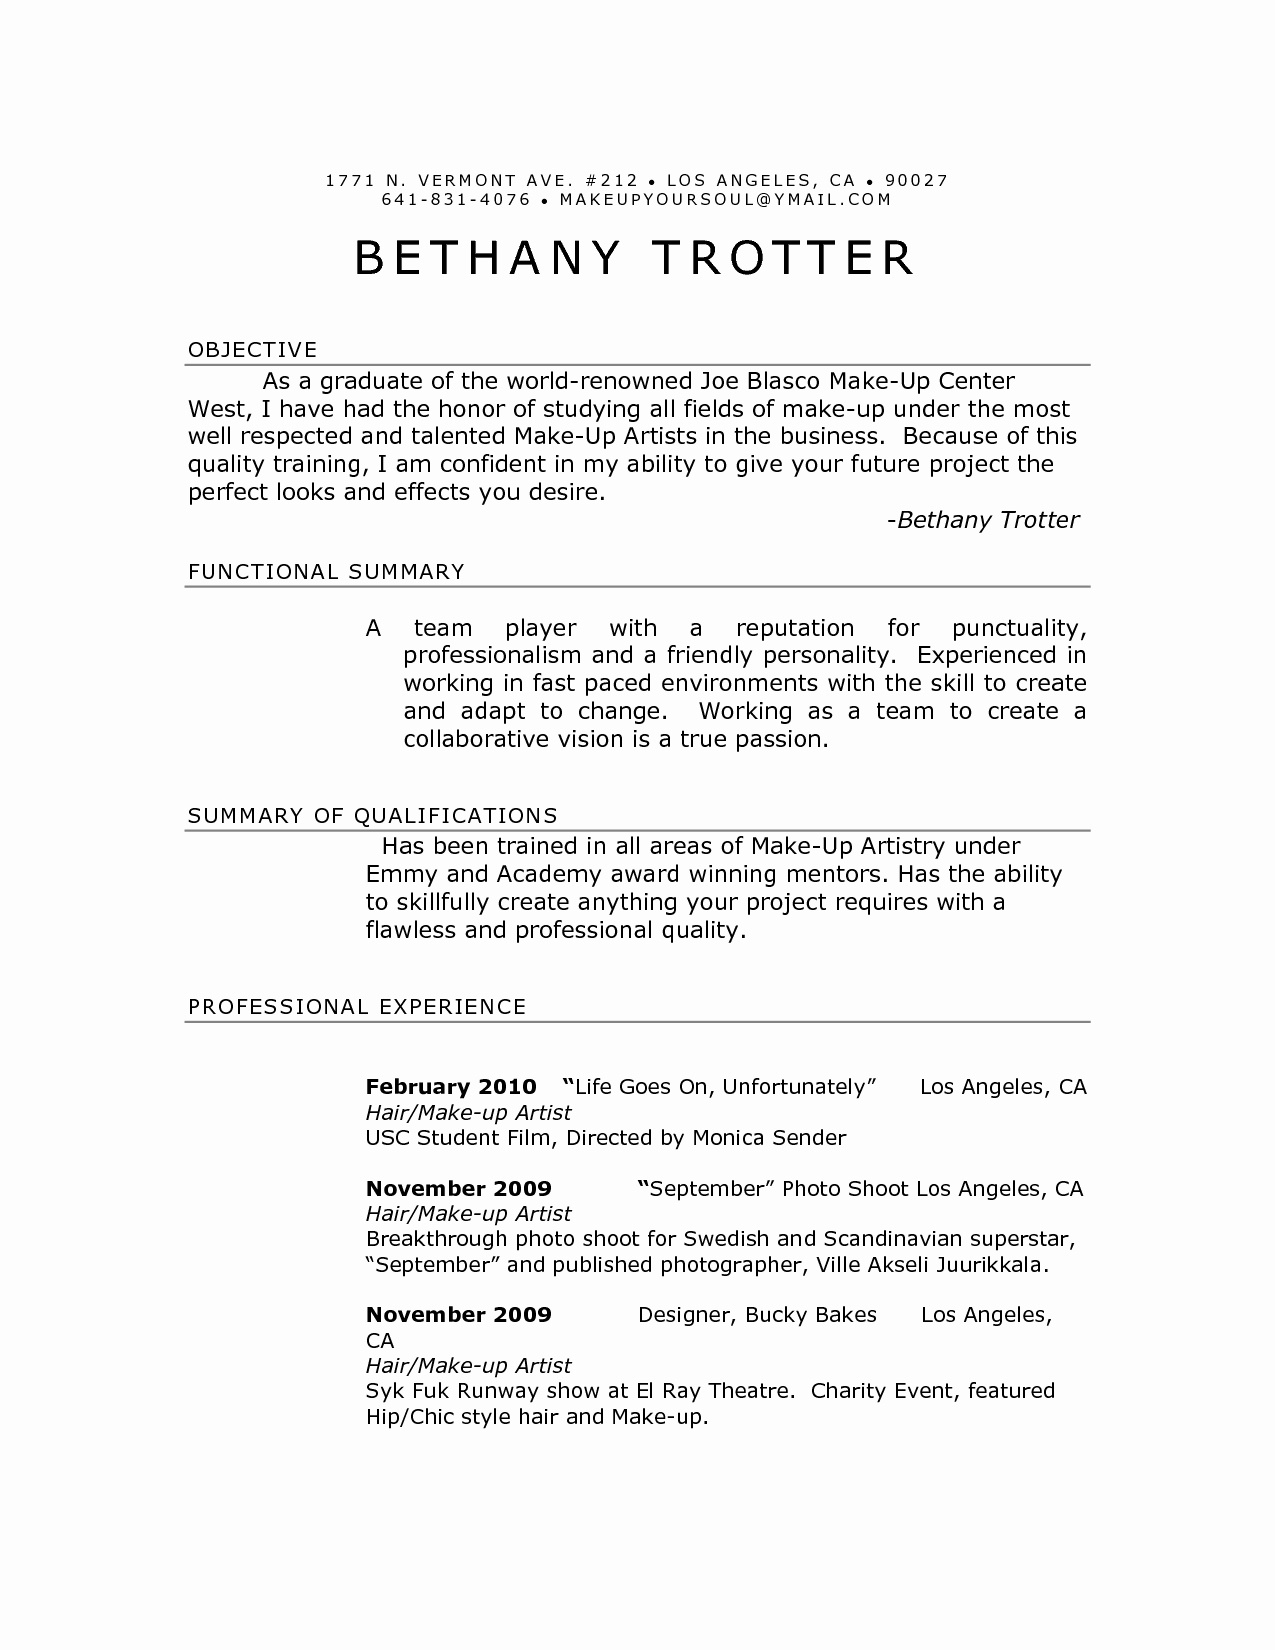 usc marshall resume template download